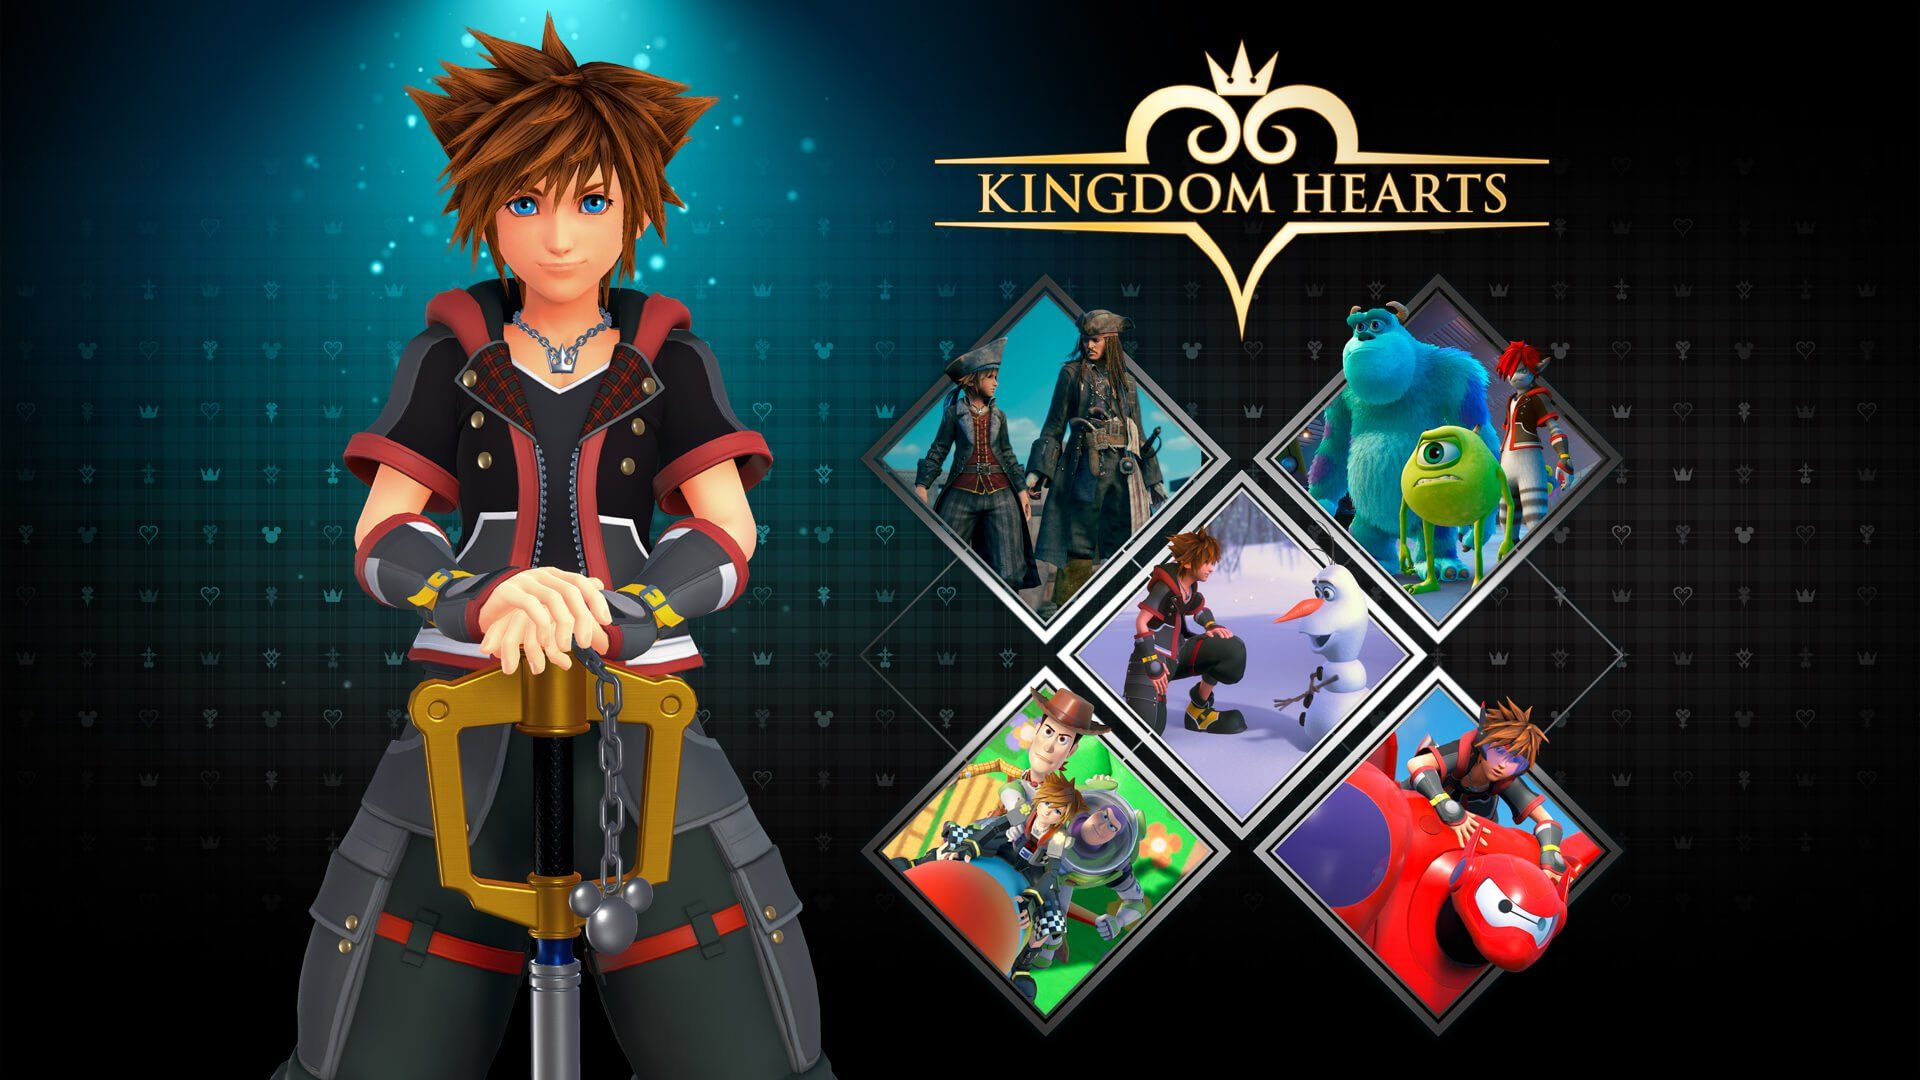 Kingdom Hearts III 'Critical Mode' update launches April 23